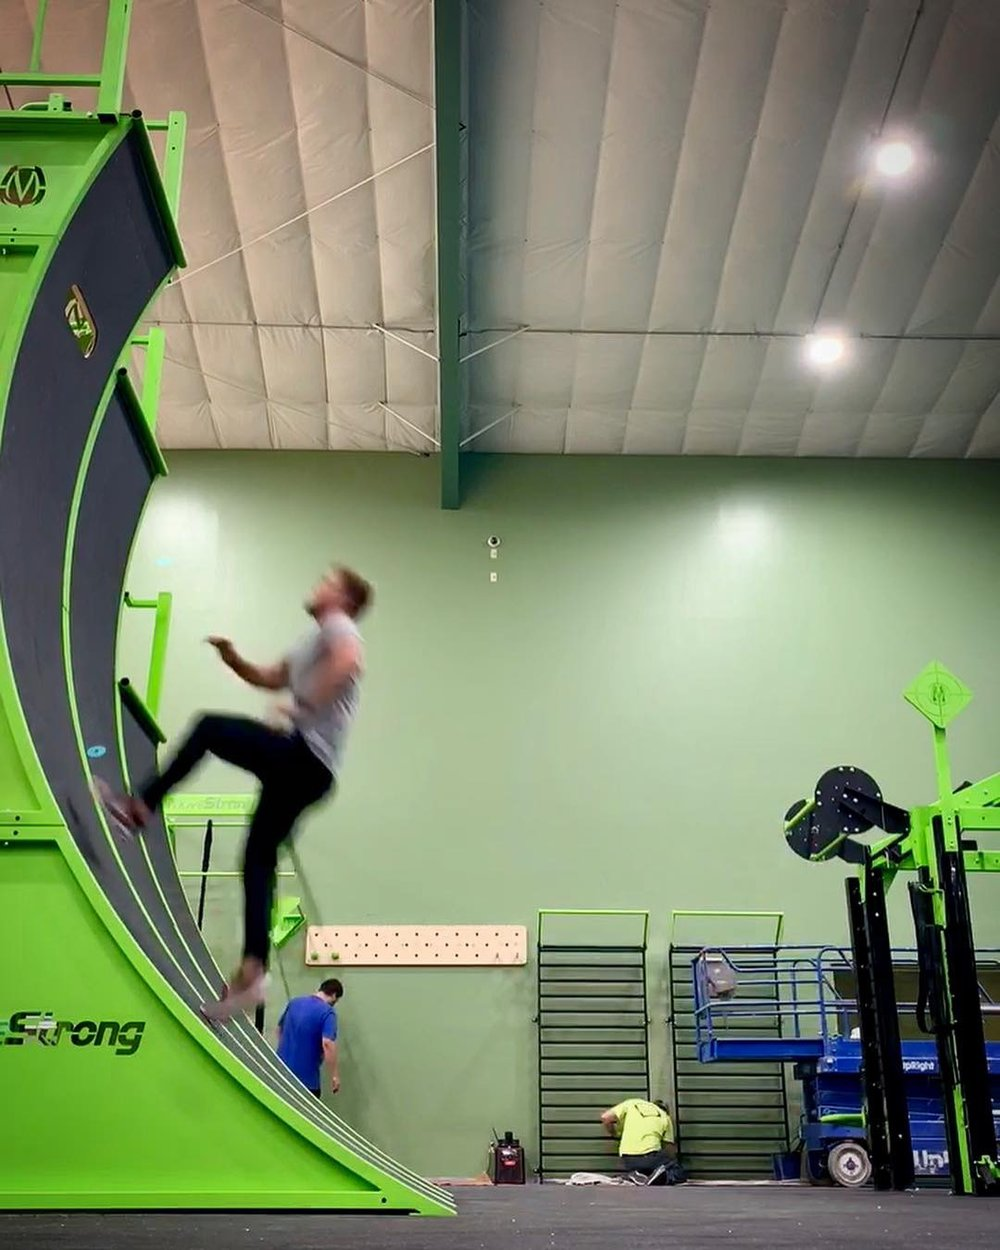 Warped Wall Training